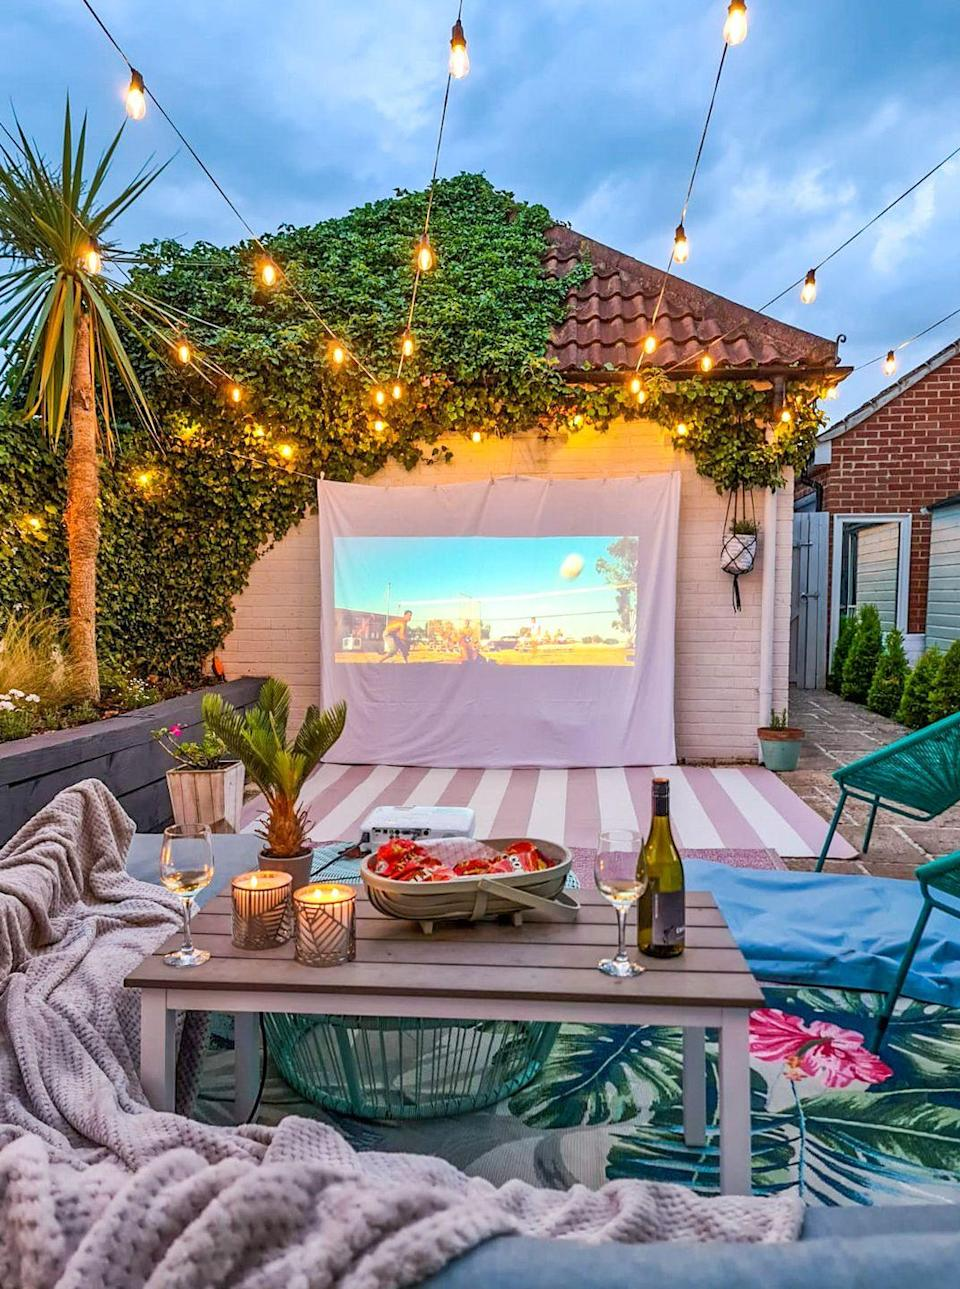 """<p>""""To create the DIY Movie Night we used string, pegs and a kingsize white sheet to create the screen and a projector which we placed on a garden table and ran the leads underneath the seating to prevent hazards,"""" says Kel. </p><p><strong>READ MORE</strong>: <a href=""""https://www.countryliving.com/uk/homes-interiors/gardens/a32810995/outdoor-cinema/"""" rel=""""nofollow noopener"""" target=""""_blank"""" data-ylk=""""slk:How to create the perfect at-home cinema in your garden"""" class=""""link rapid-noclick-resp"""">How to create the perfect at-home cinema in your garden</a></p>"""